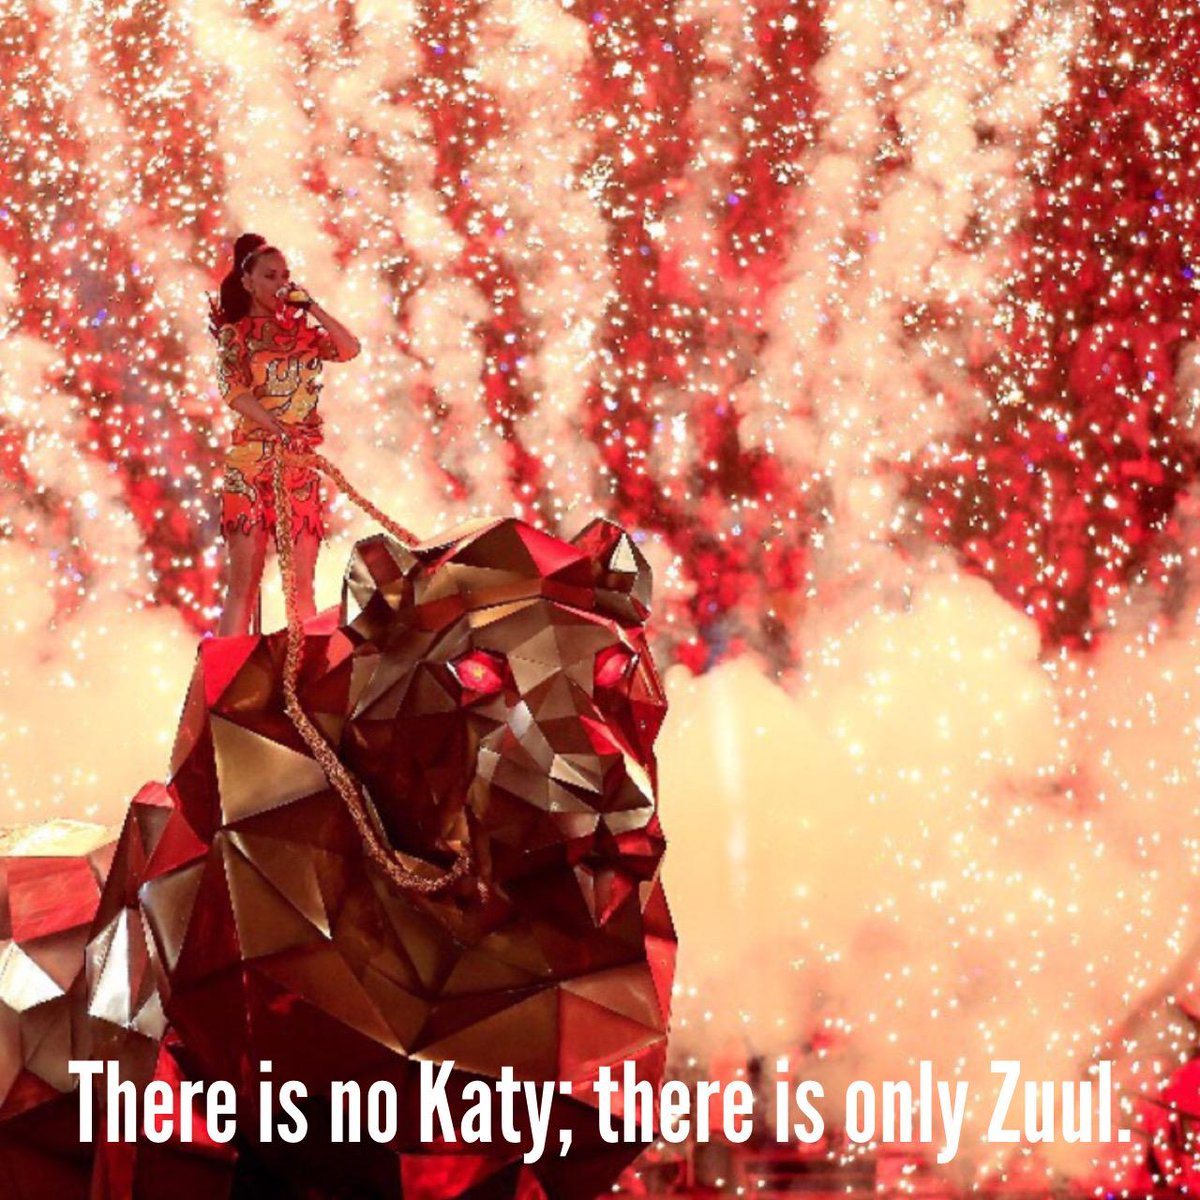 """There is no Katy; there is only Zuul."" #SuperBowI #HalftimeShow #wtf http://t.co/6tYynmslyx"